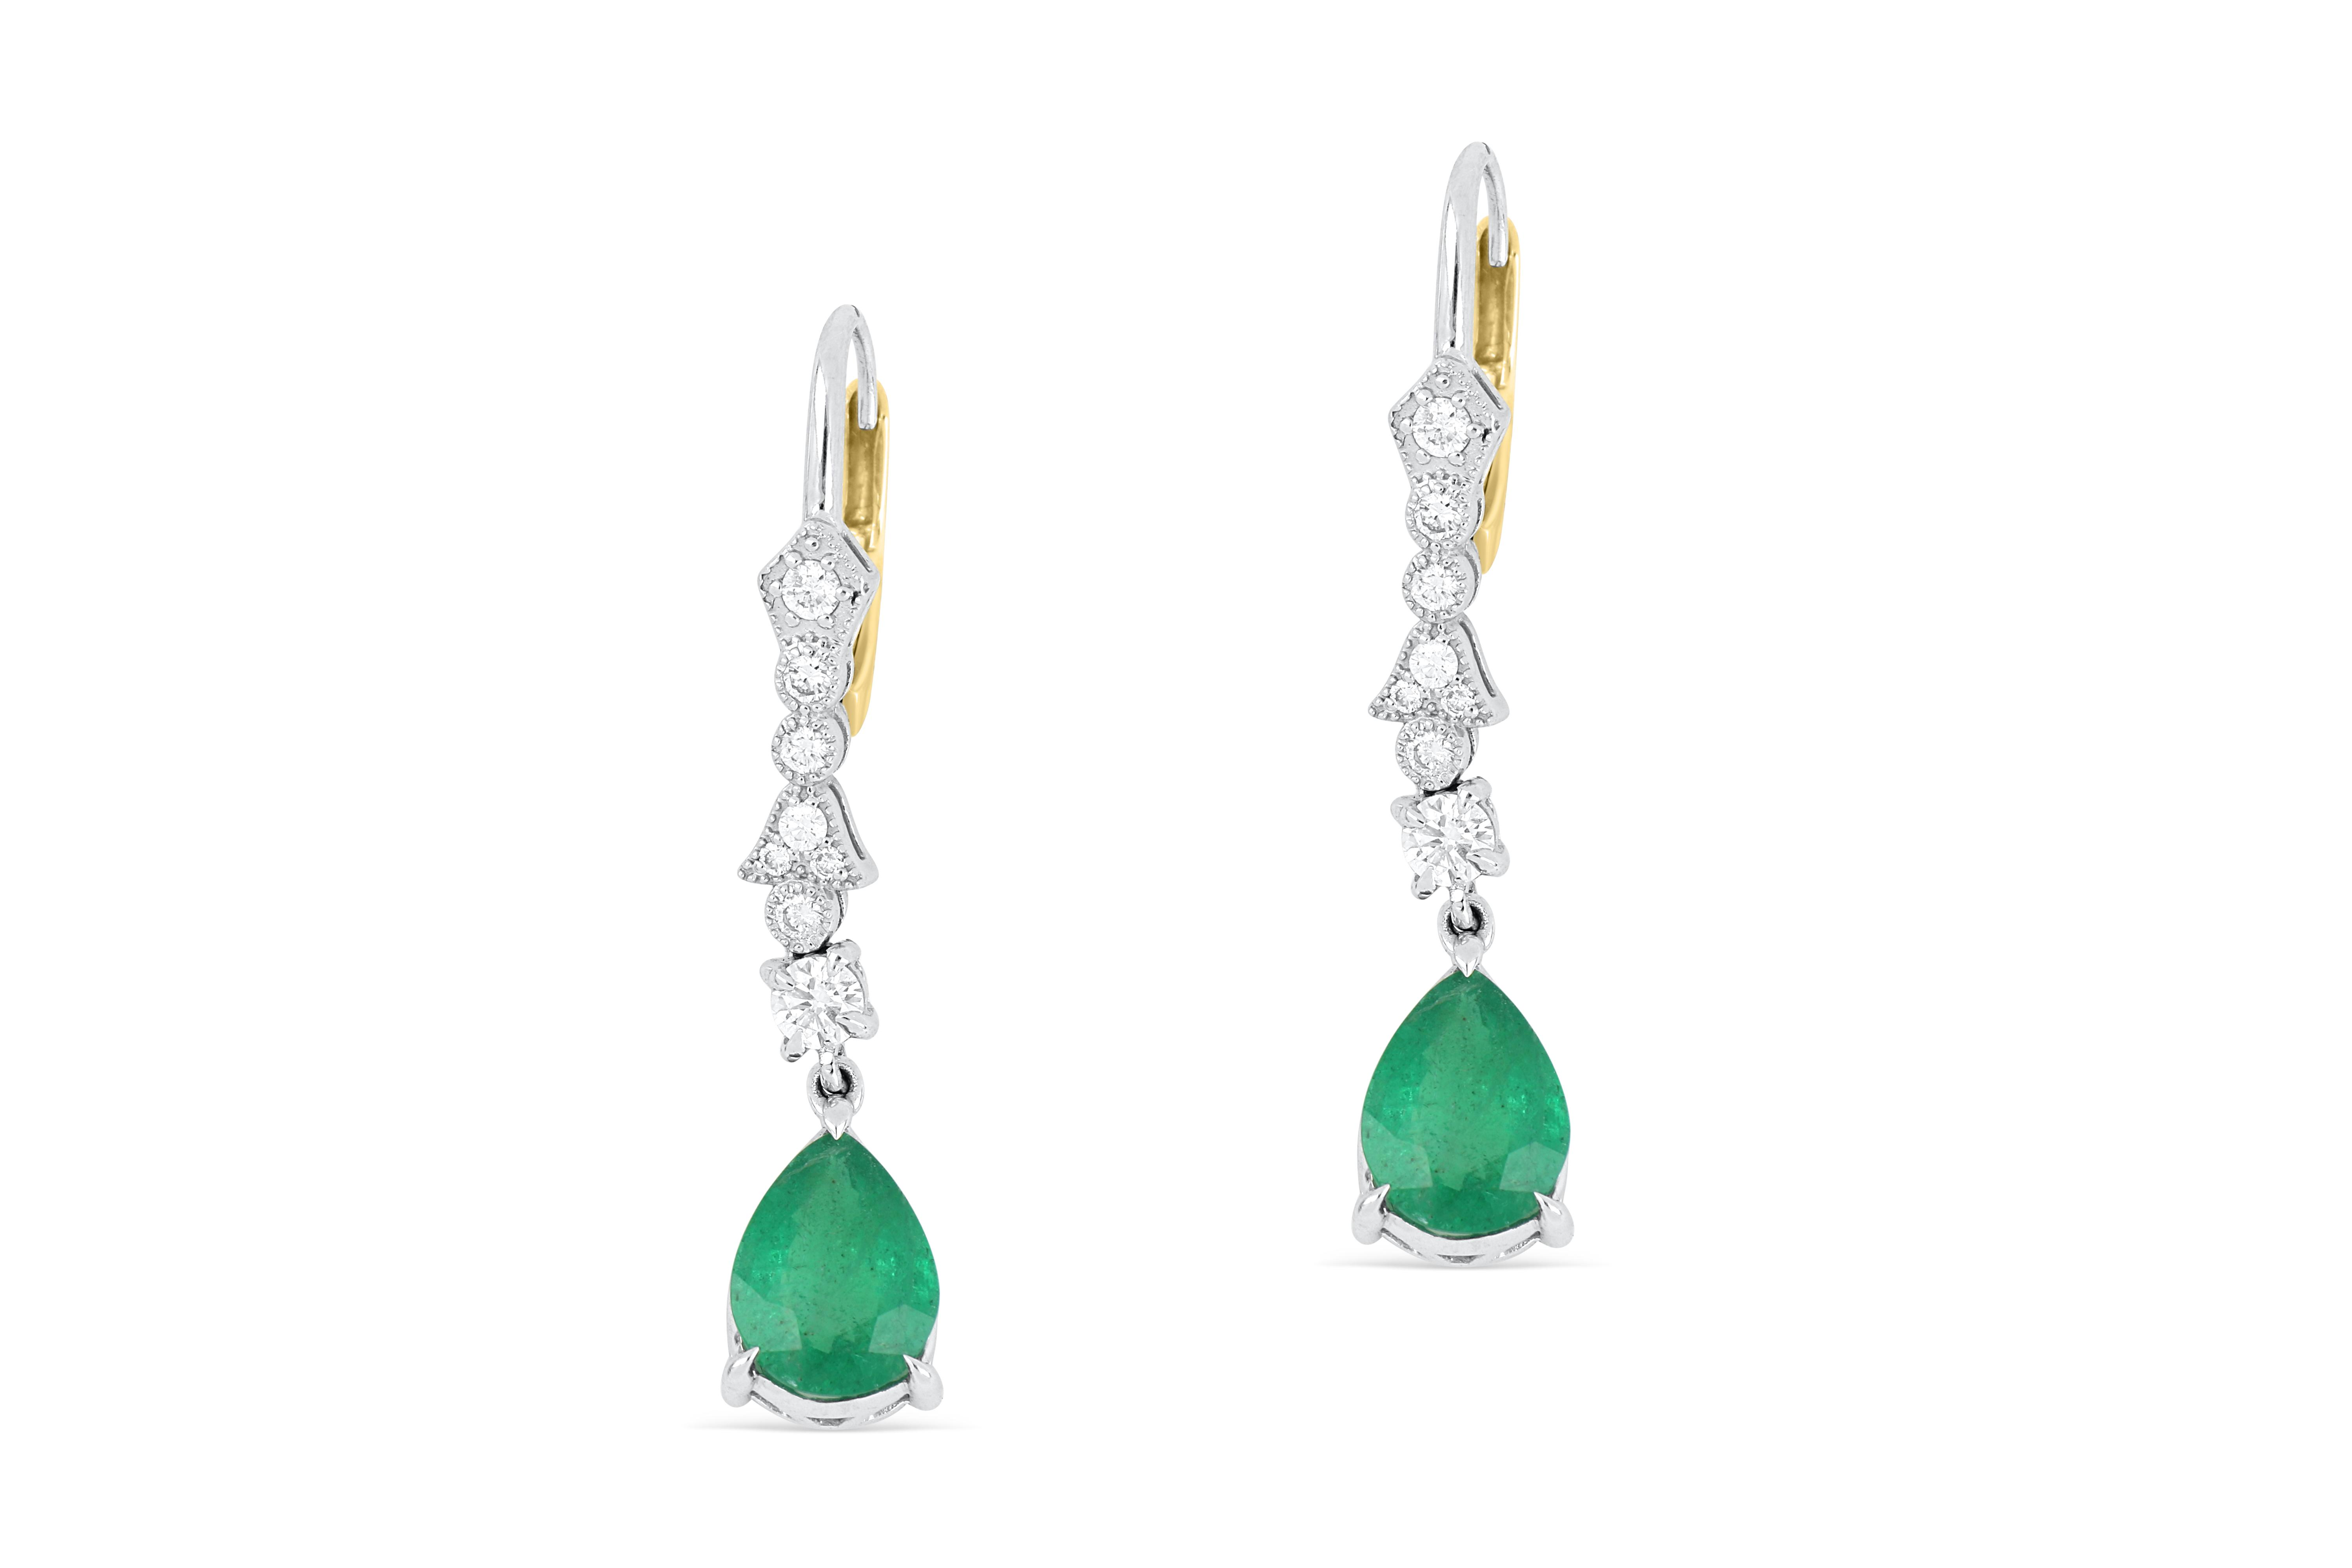 18k gold earrings set with natural emerald & diamond